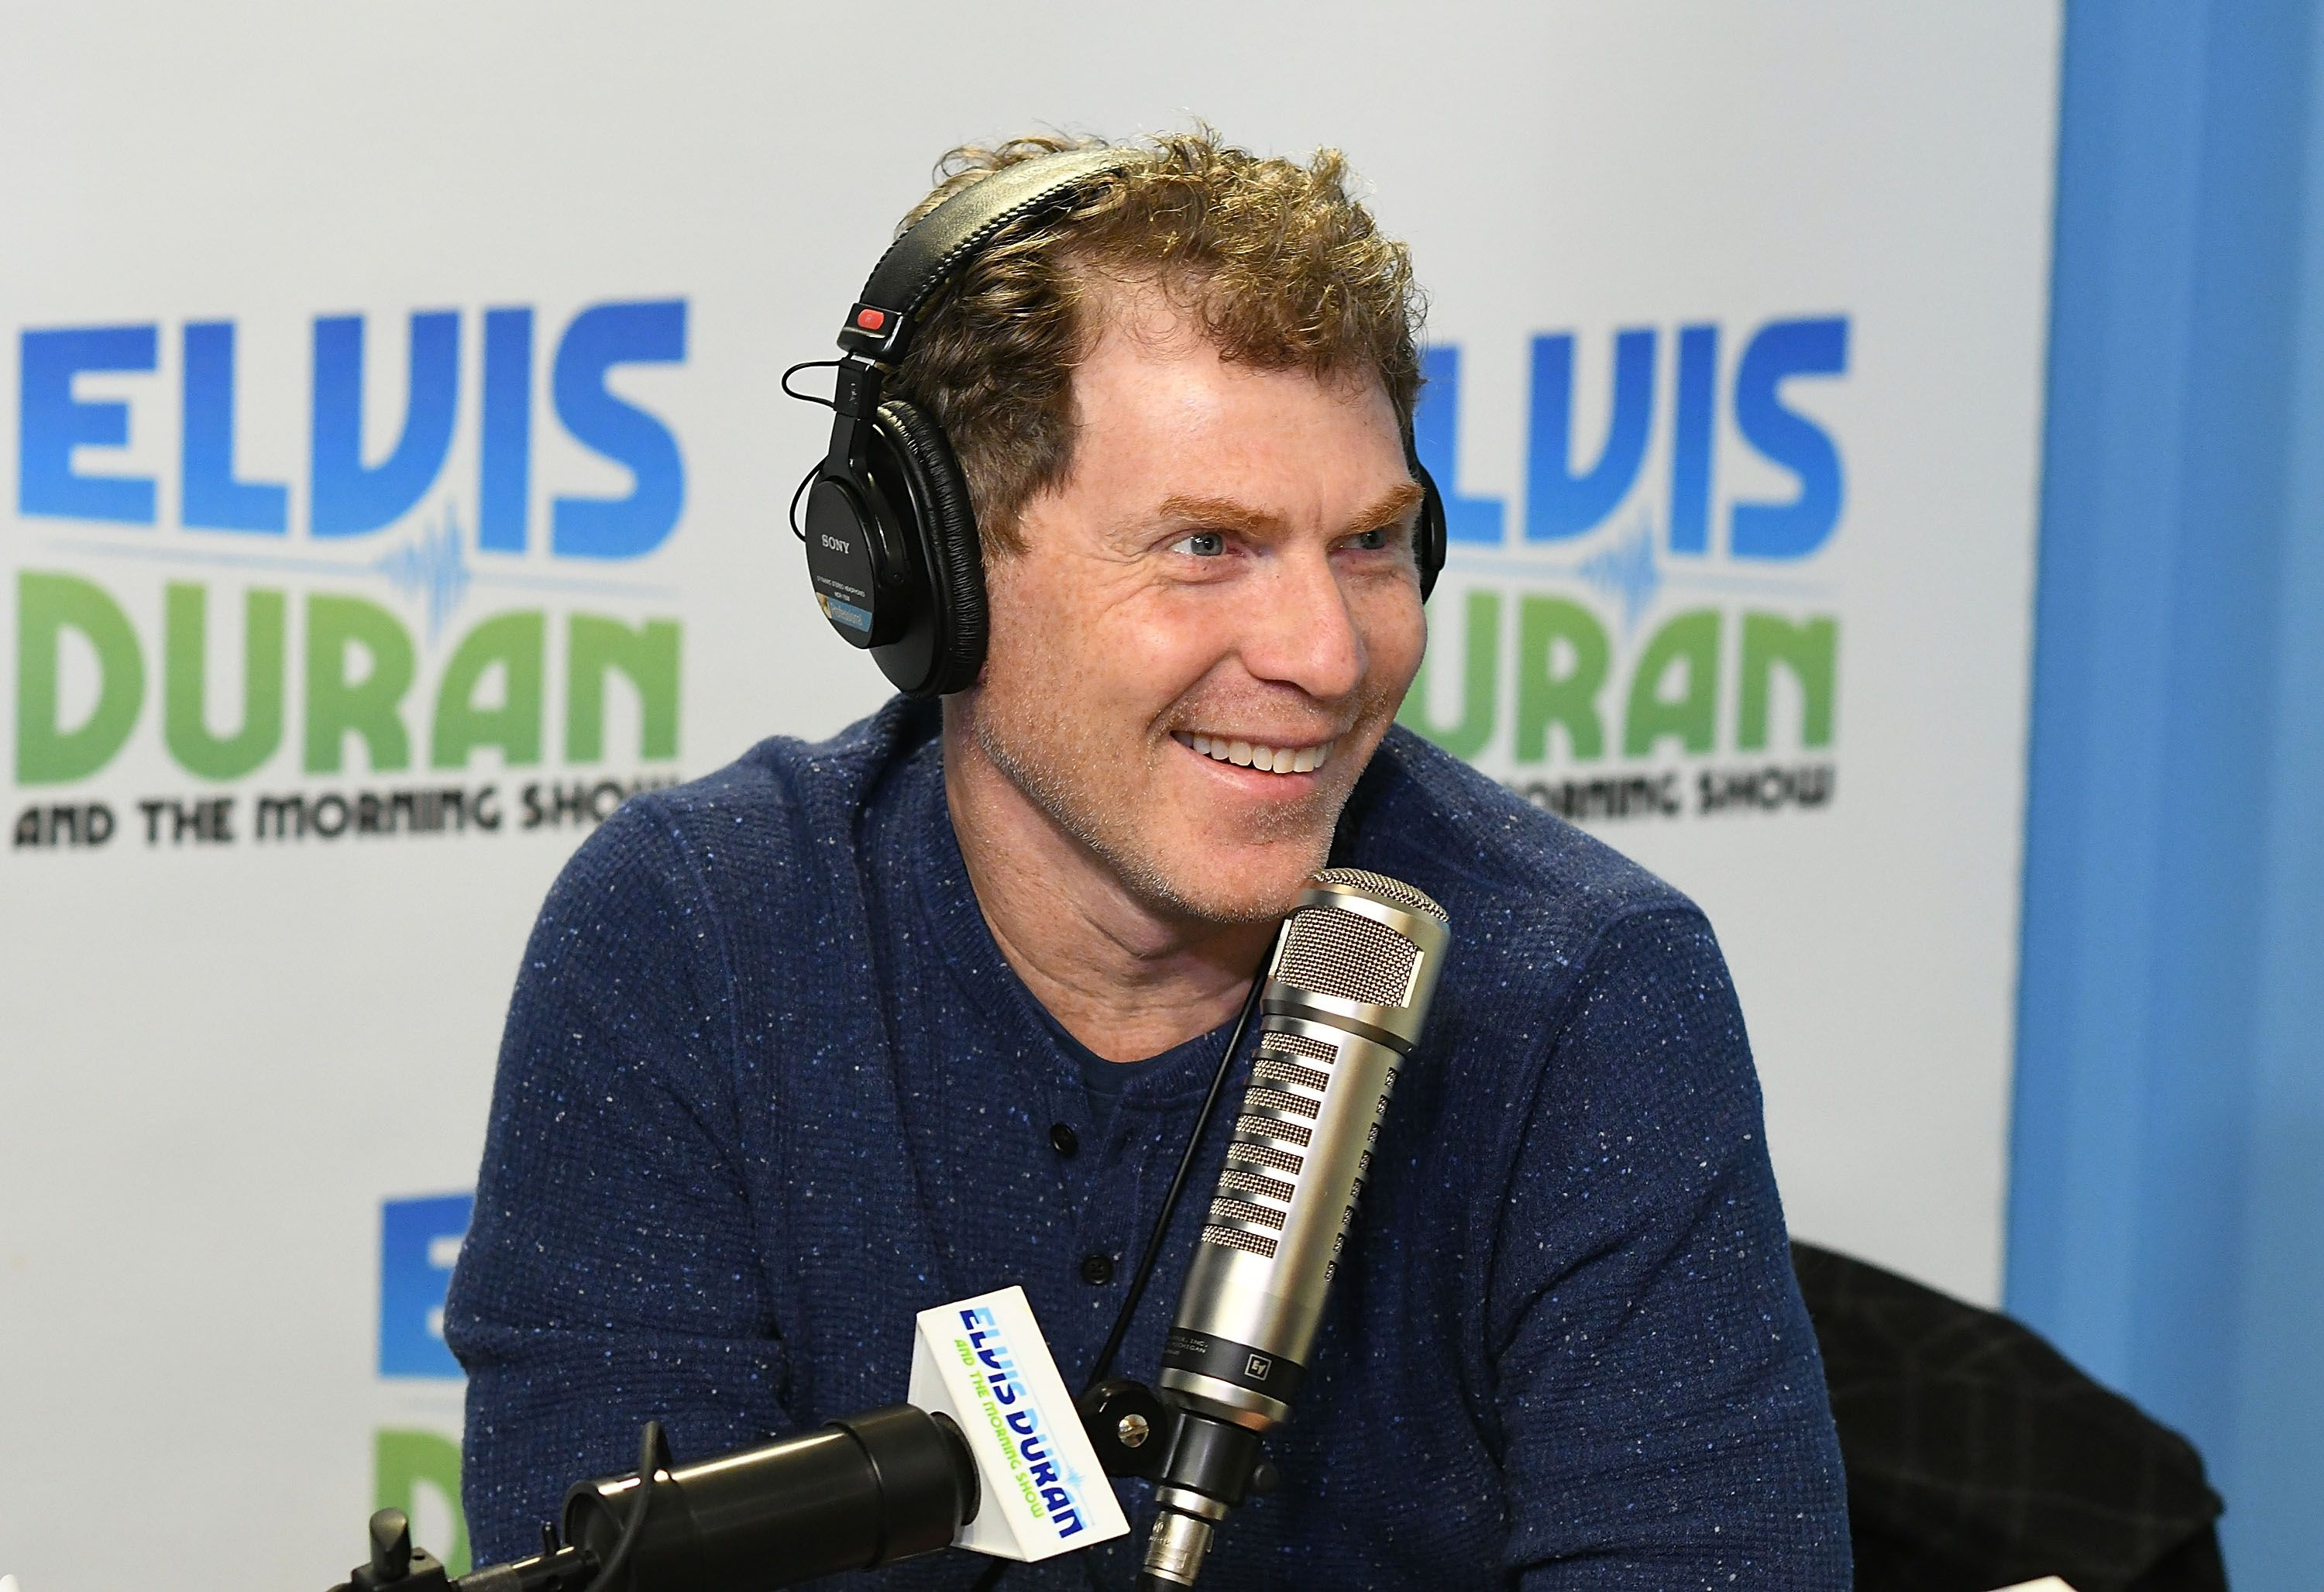 """Bobby Flay on """"The Elvis Duran Z100 Morning Show"""" in 2017 in New York City   Source: Getty Images"""